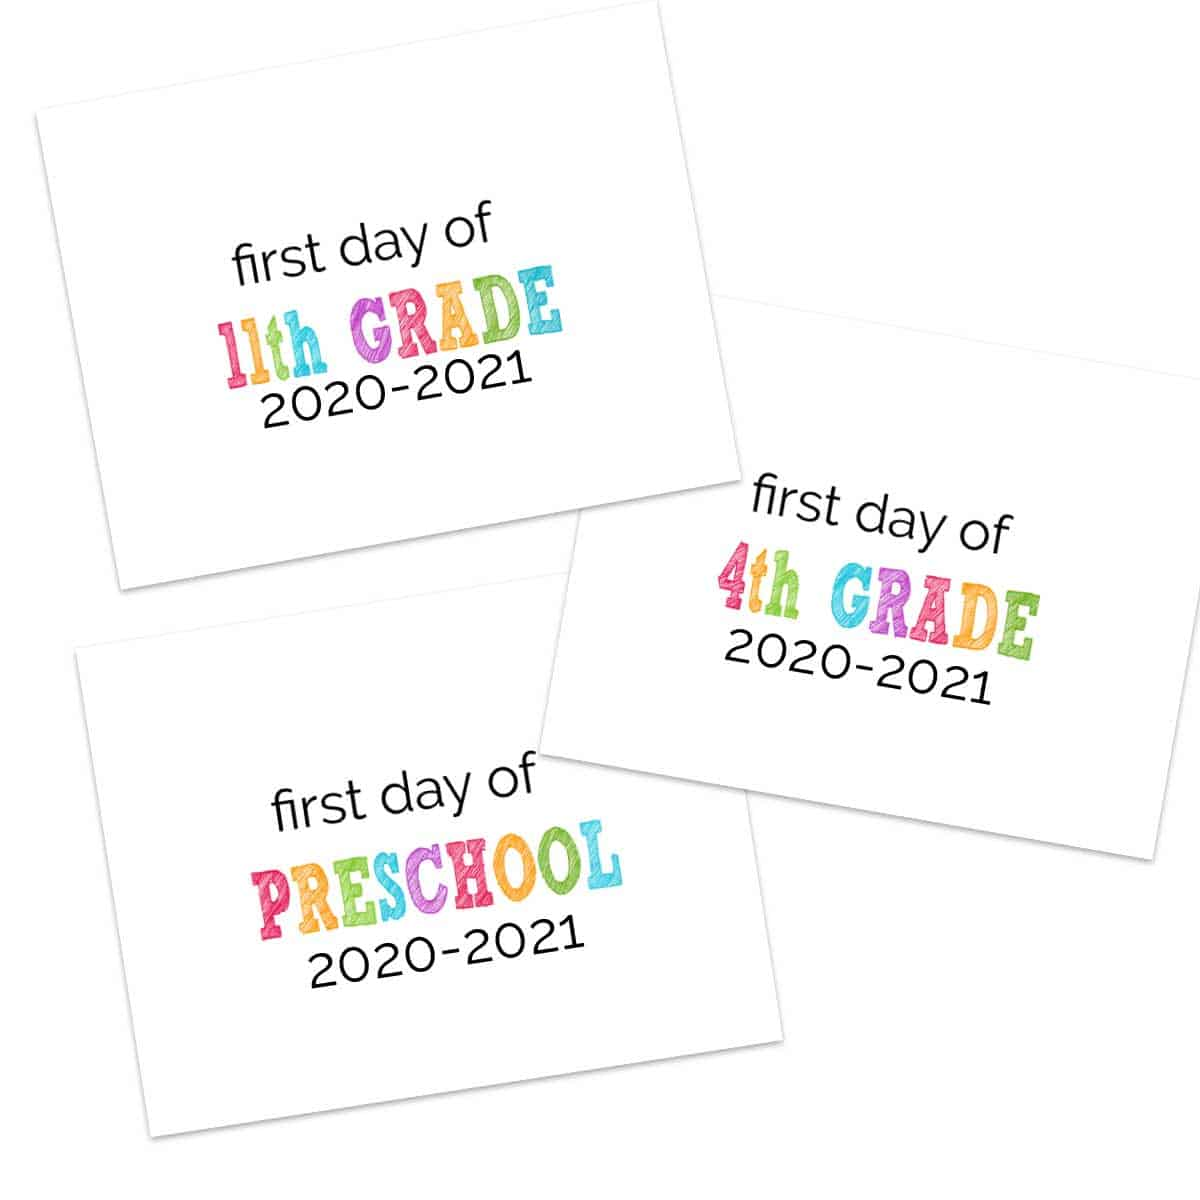 1st Day of School 1st and Last Day Photo Preschool Sign First Day of School Classroom Banner Kindergarten Sign First Day of Preschool